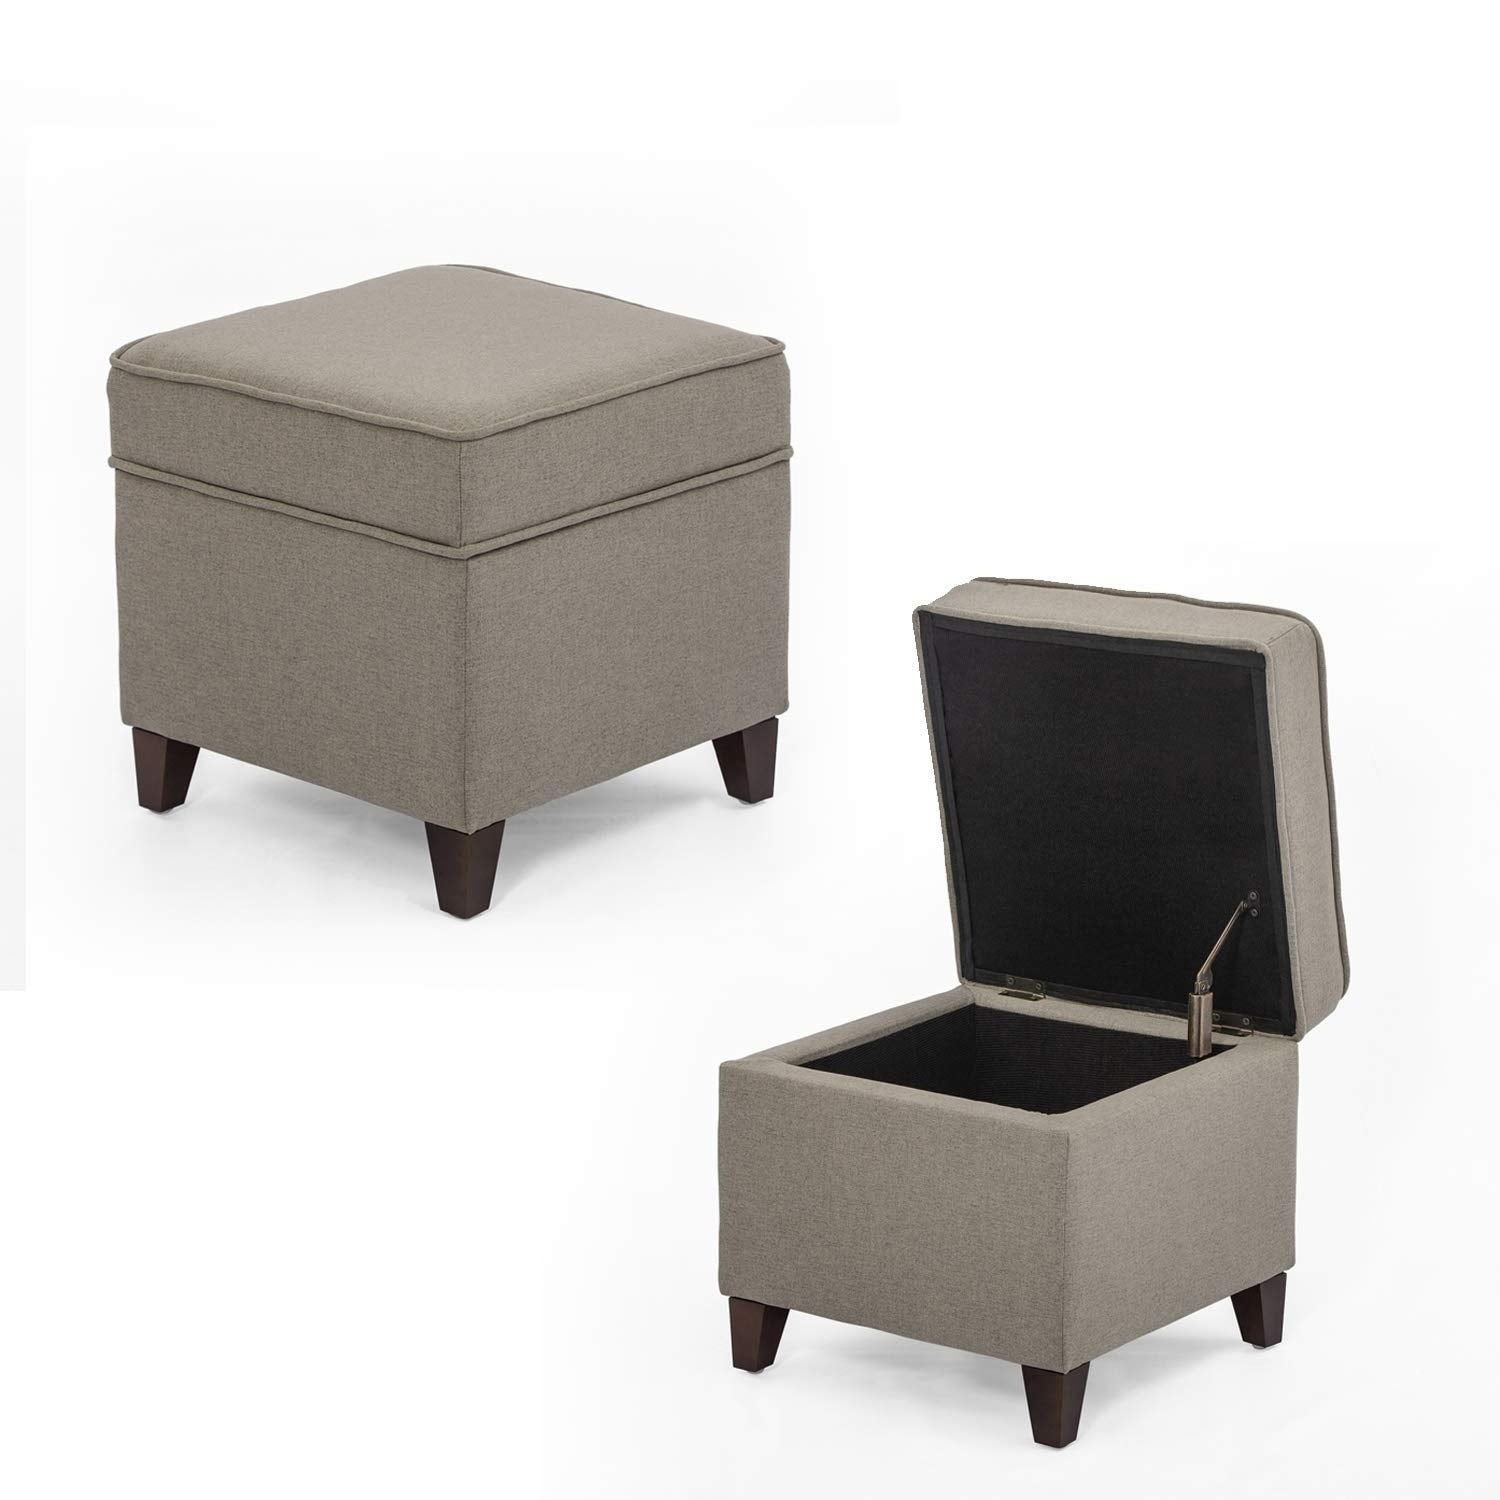 Brilliant Adeco Ottoman Storage Chest Footrest Square Seat Light Grey Gmtry Best Dining Table And Chair Ideas Images Gmtryco